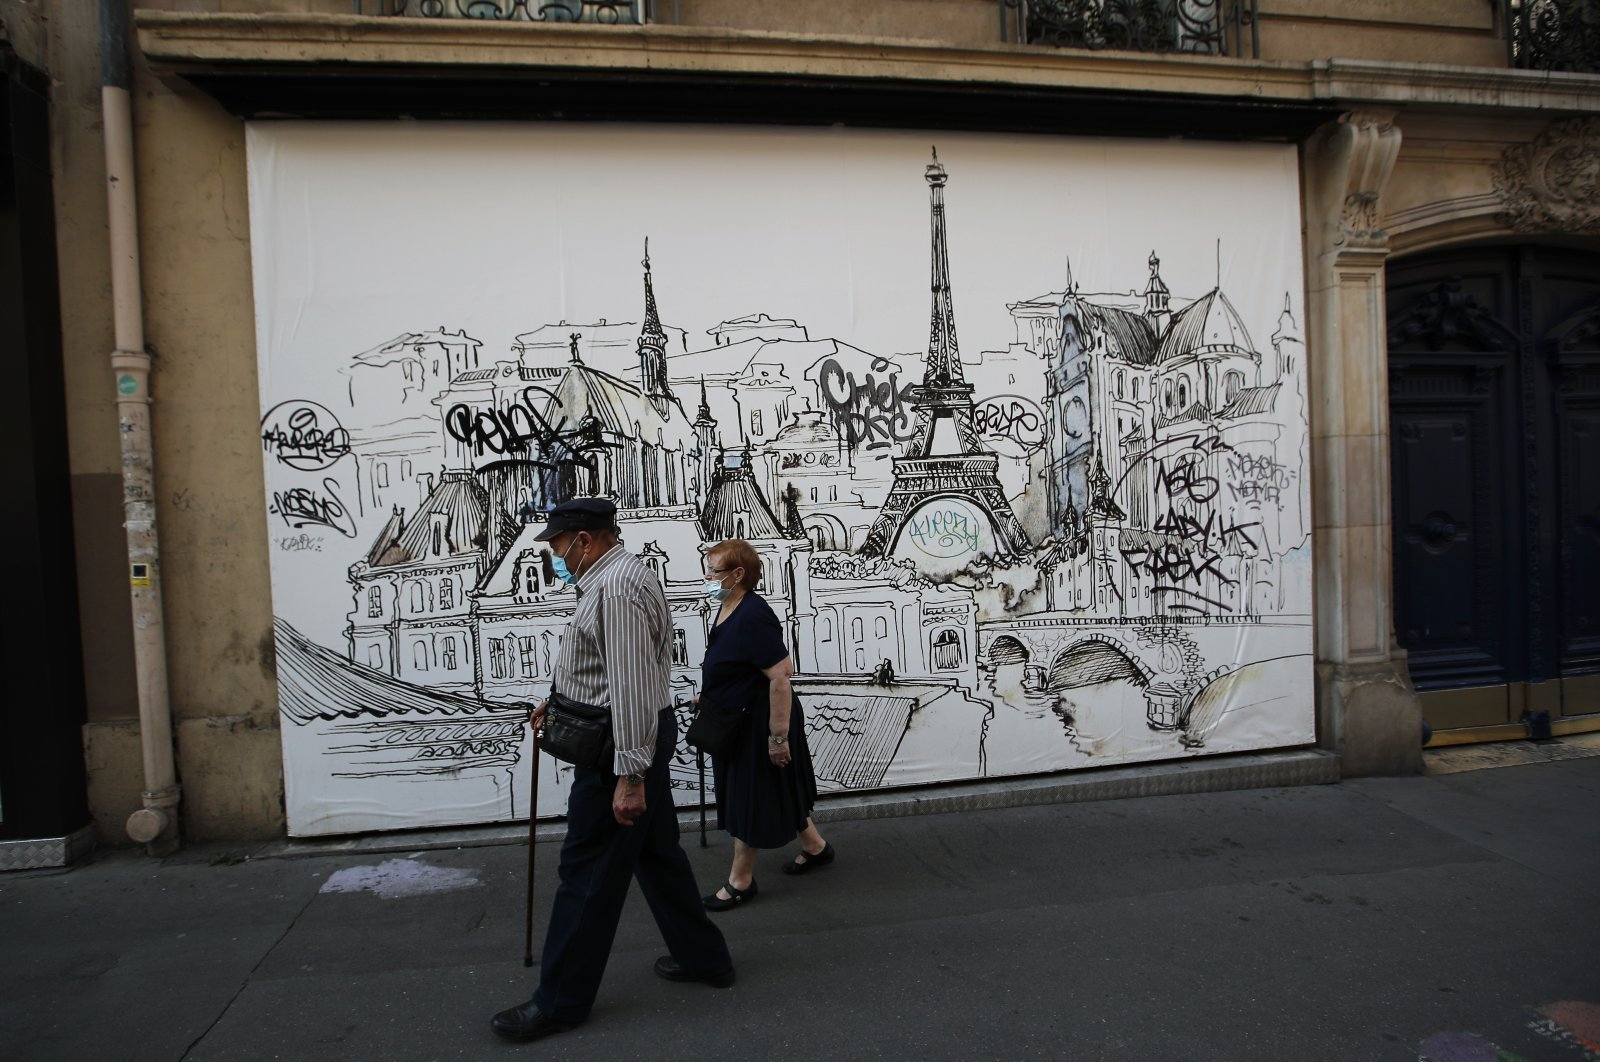 A couple wearing protective masks take a walk during a nationwide confinement to counter the COVID-19, in Paris Friday April 10, 2020. (AP Photo)